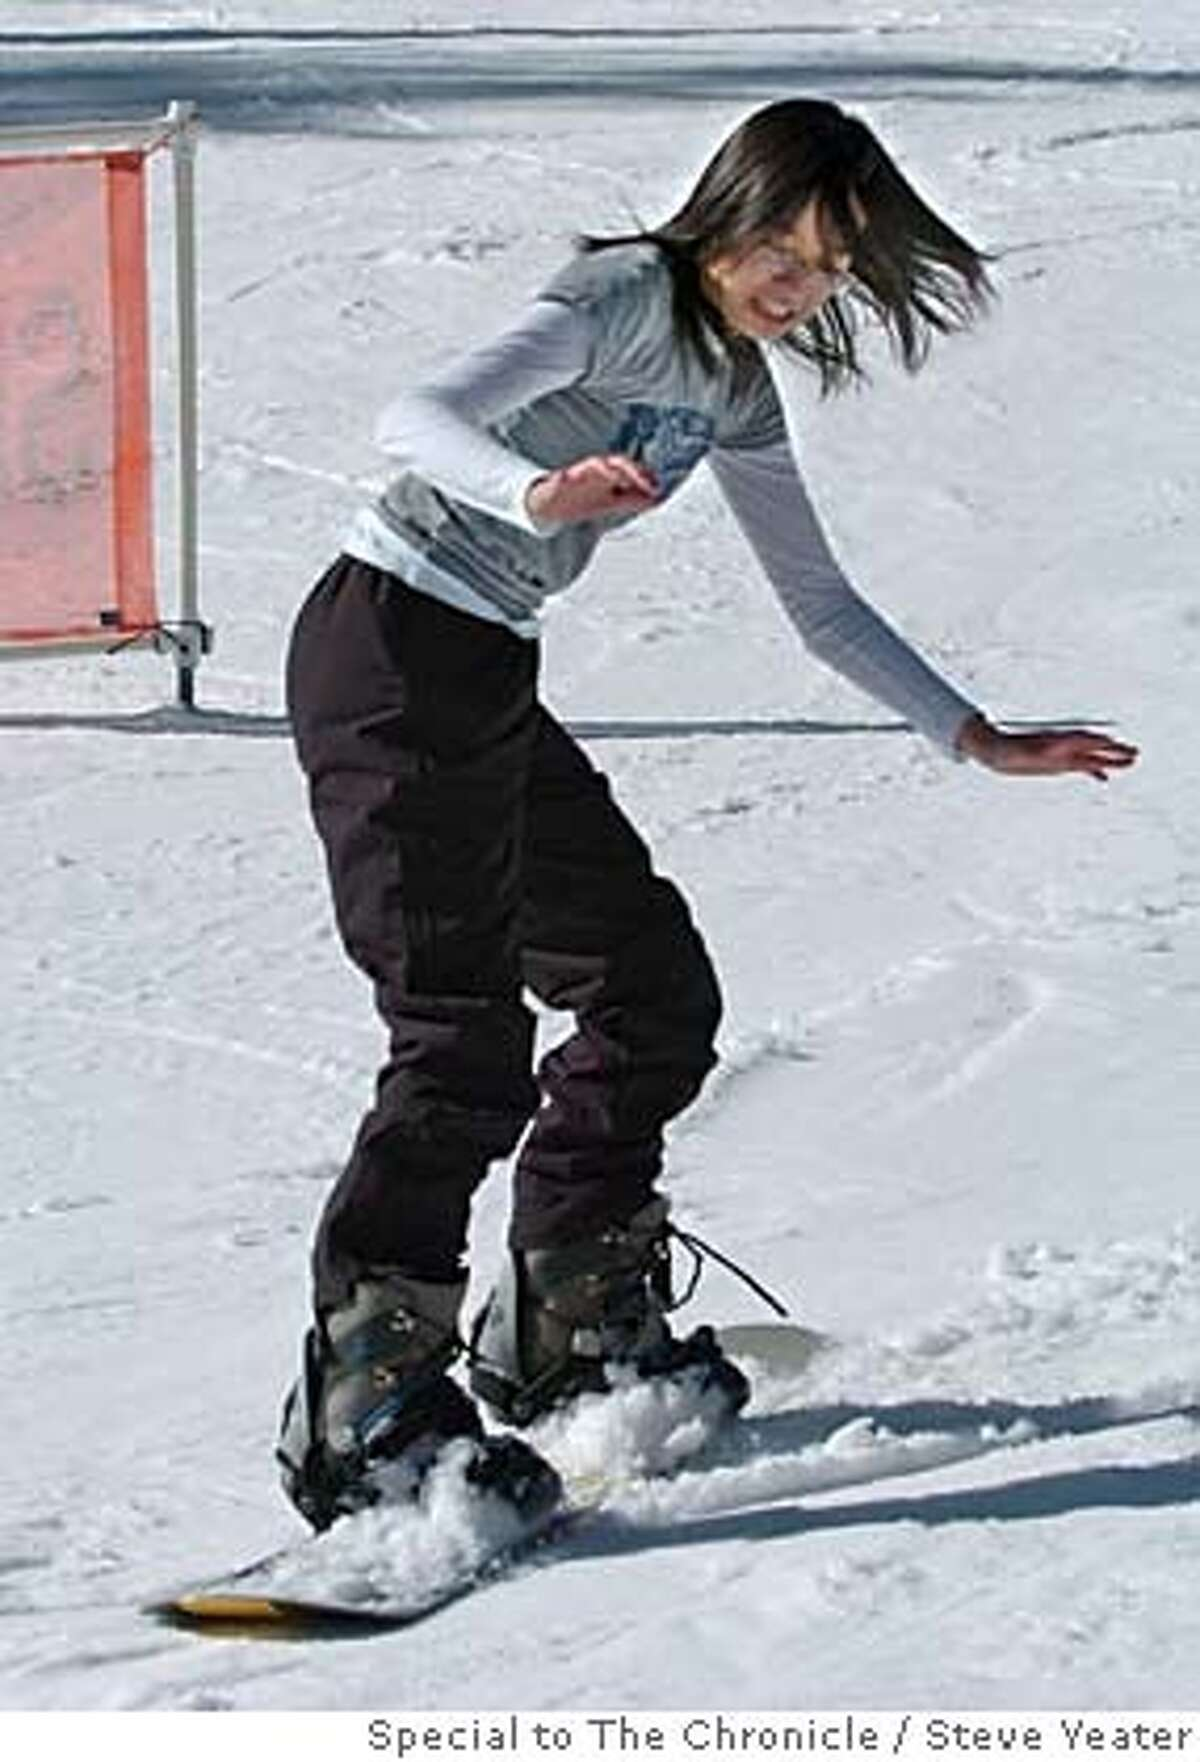 �Rosie Chao glides down the bunny hill during an outing with the Santa Clara University Asian Pacific Student Union at Northstar at Tahoe on Saturday, Feb. 11, 2006.(Steve Yeater/Special to The Chronicle)